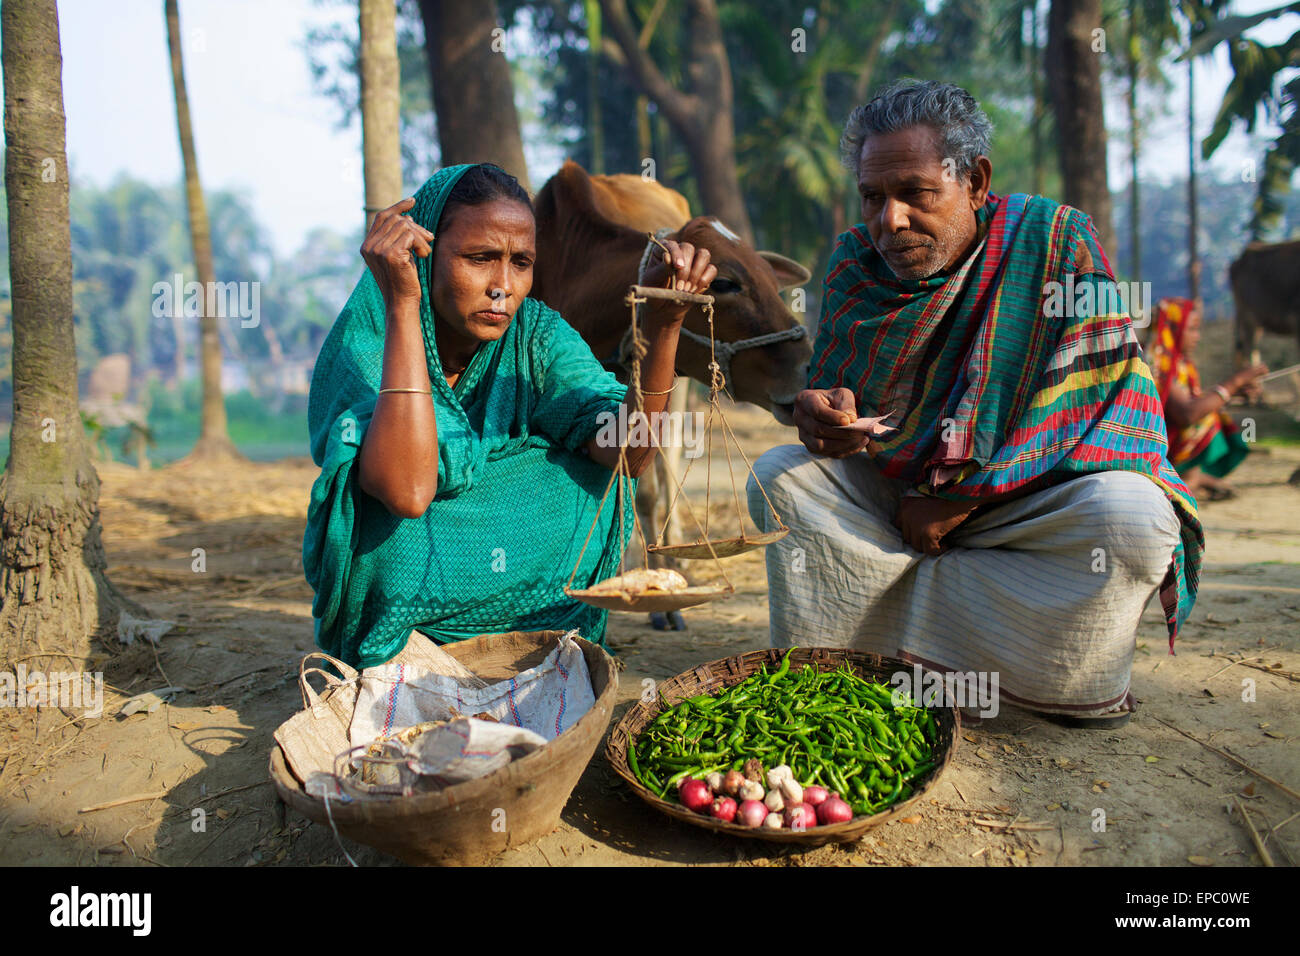 Couple selling vegetables kishoreganj bangladesh stock image